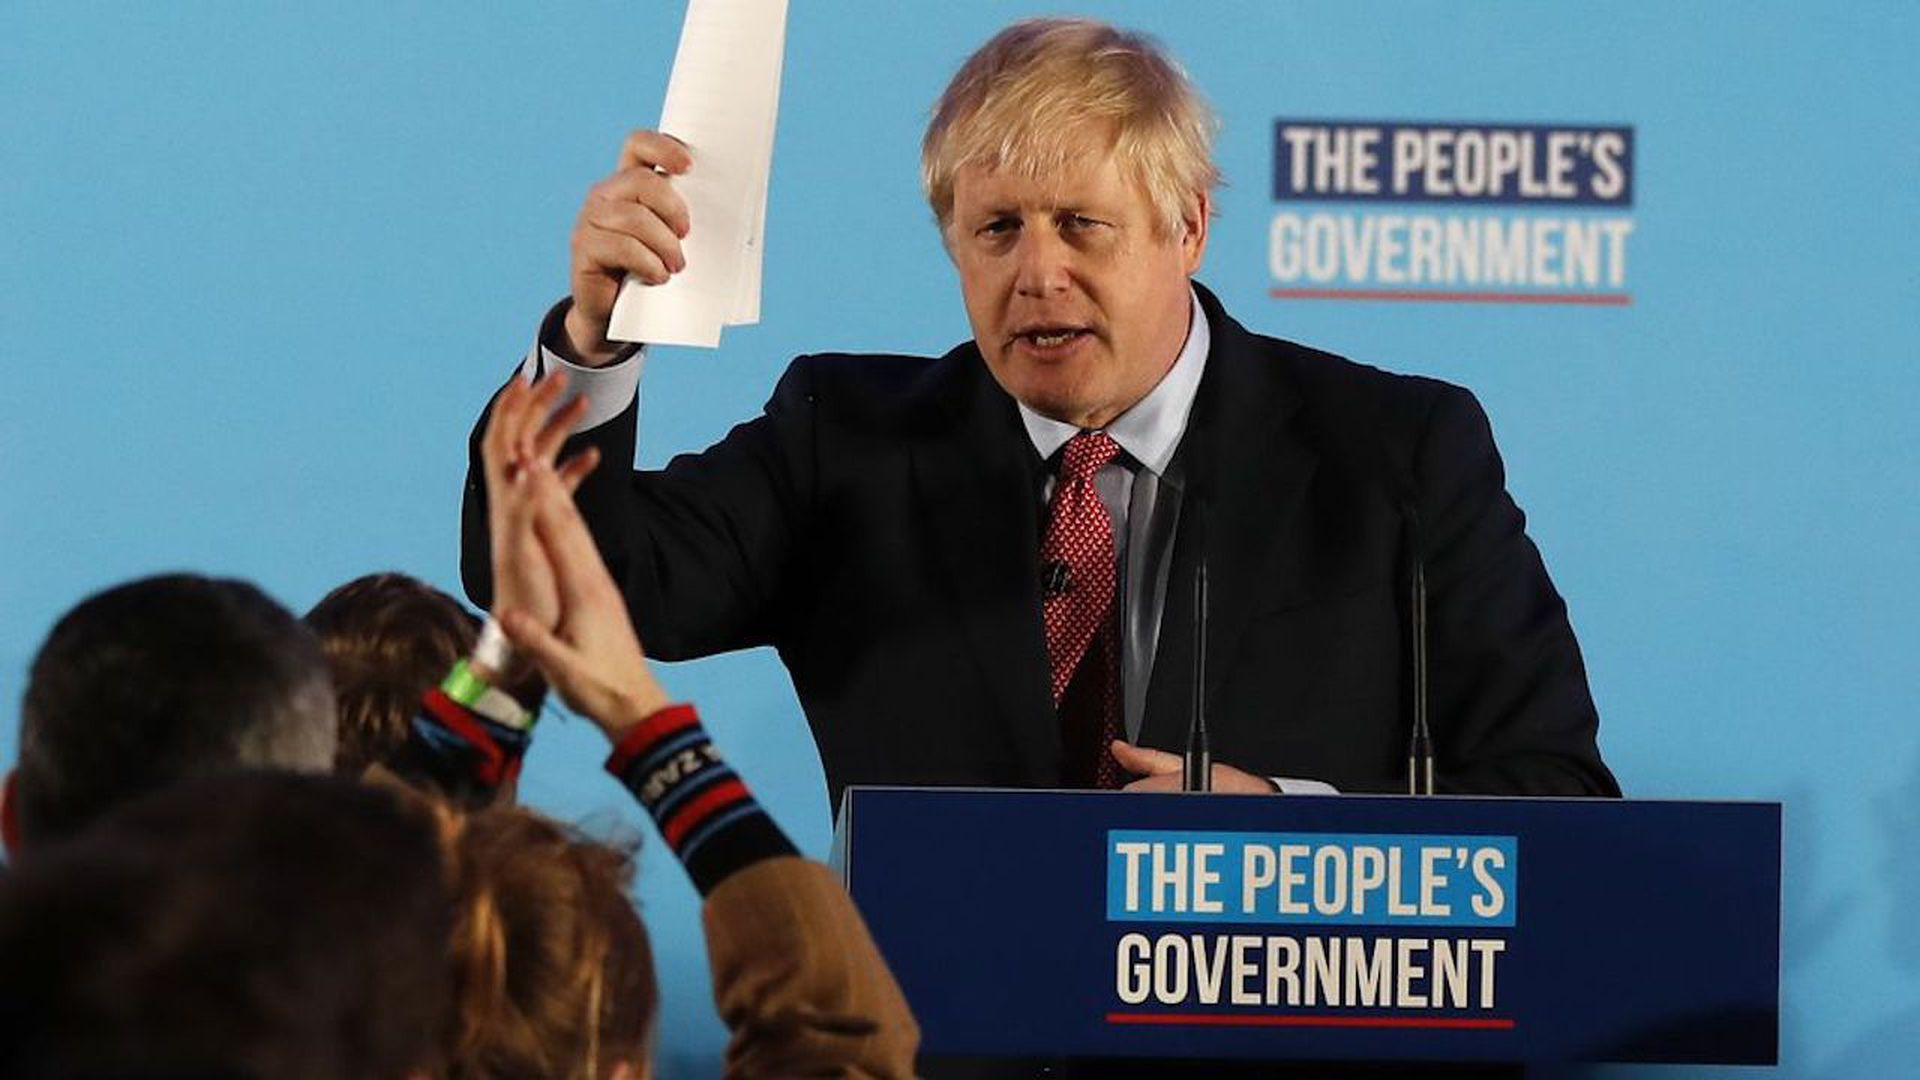 Why Boris Johnson's victory could be a warning for liberal U.S. Democrats ahead of 2020